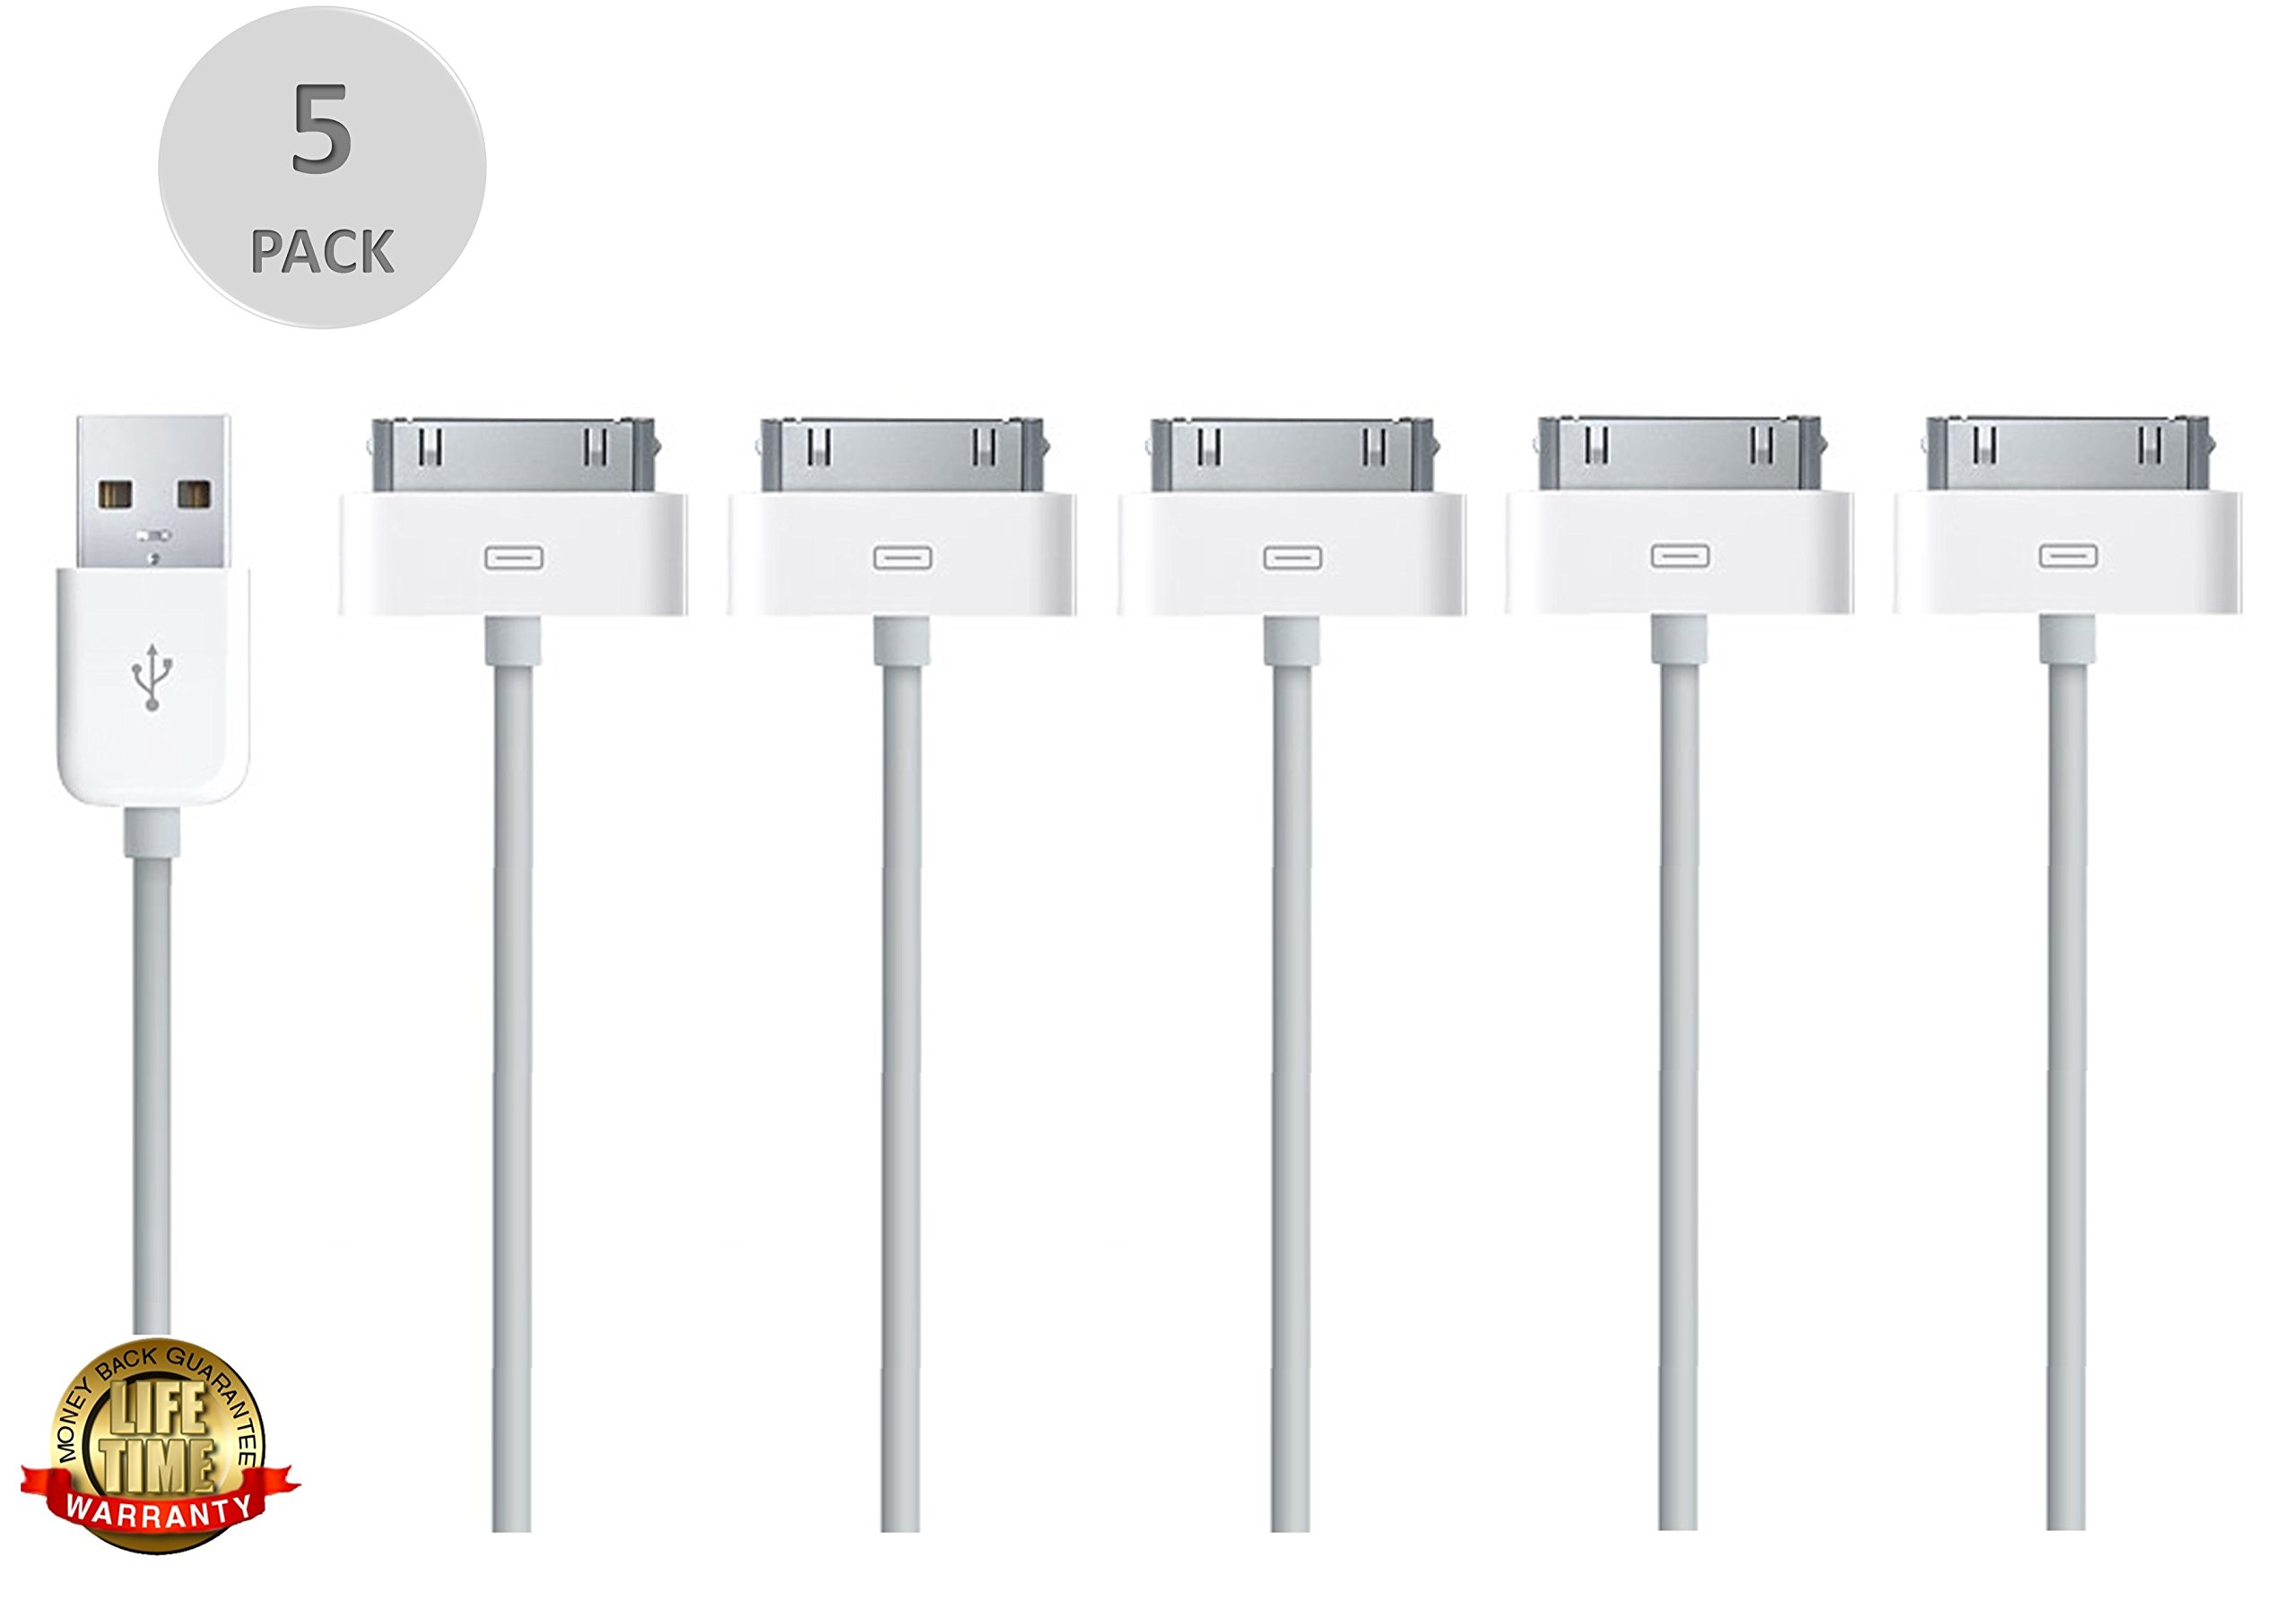 iPhone 4s 30-Pin Charging Cable, Liger [5-Pack] Premium 3.4ft 30 Pin To USB Cables High Speed USB 2.0 Sync and Charge Cables for for iPhone 3 to 4s iPad 1 2 iPod 1th to 4th Gen, iPod IOS 8 compatible by Liger (Image #1)